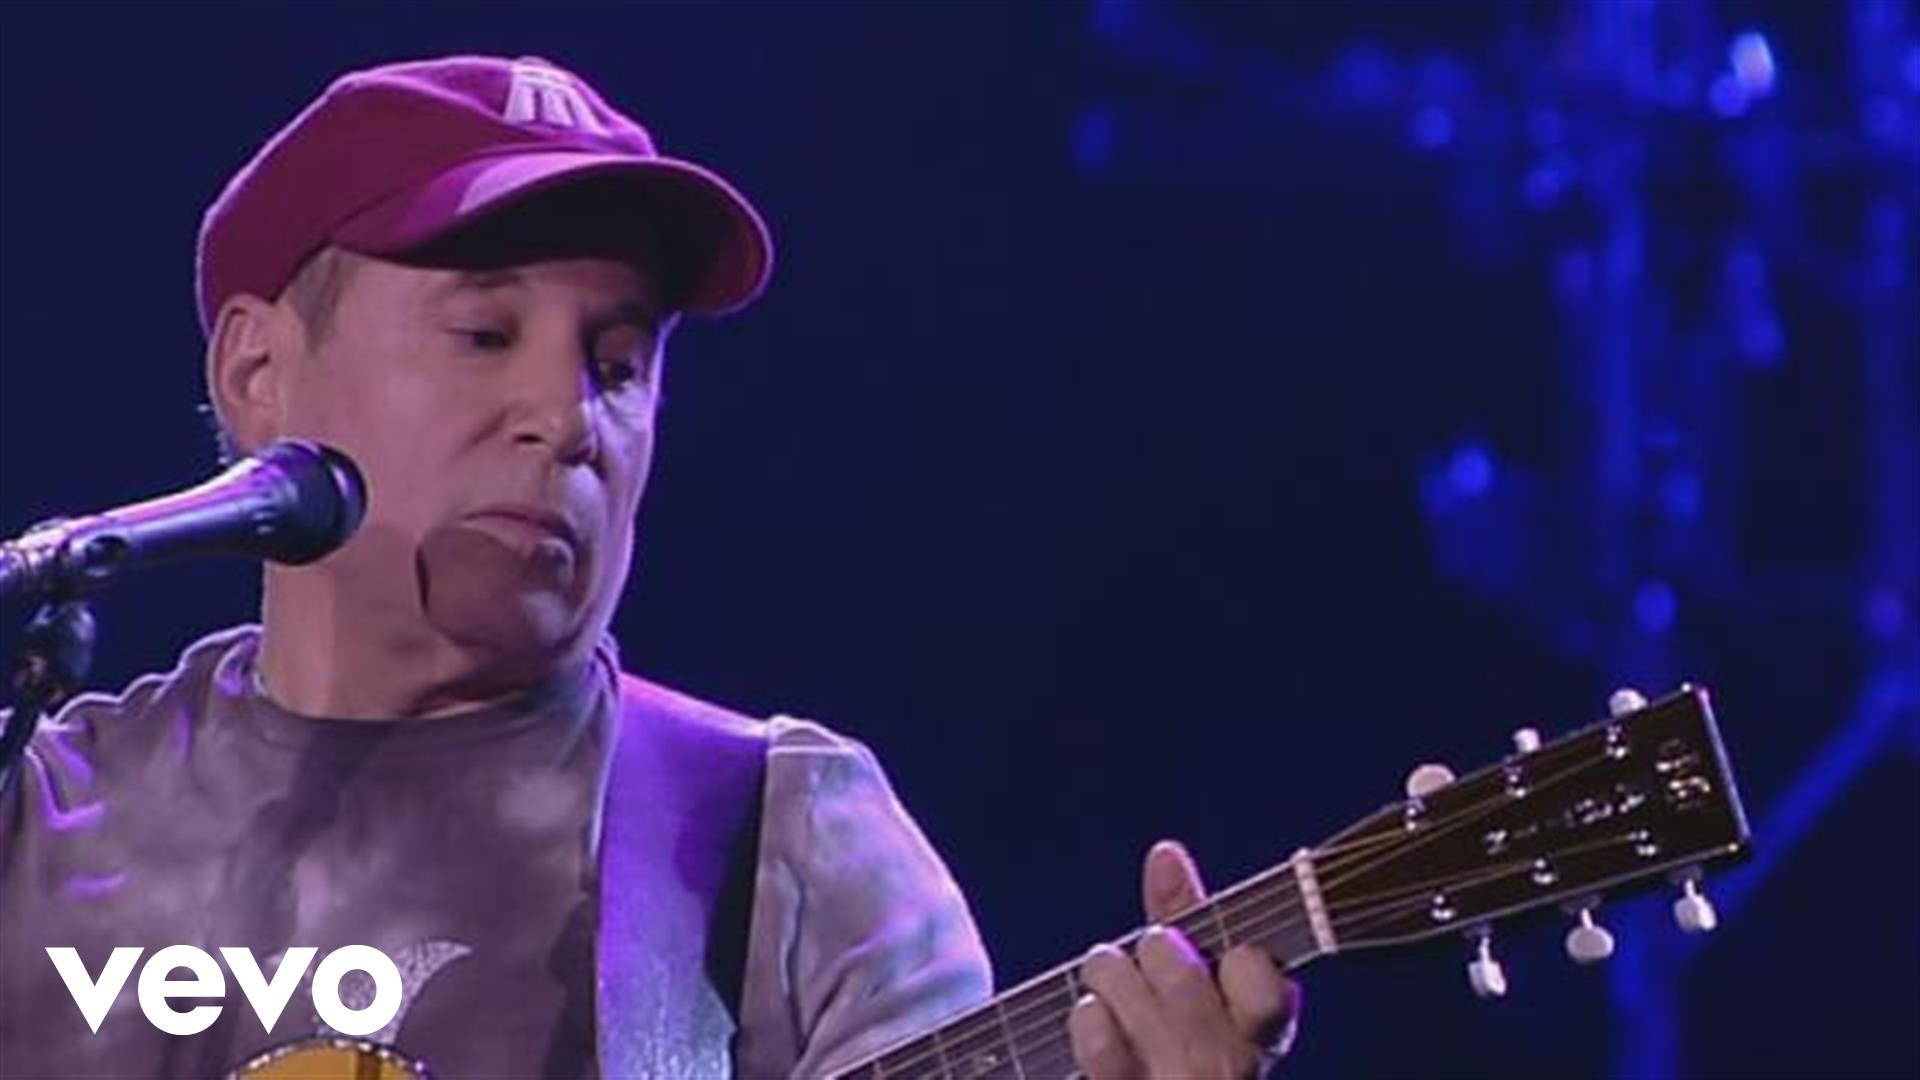 Paul Simon to headline at Summerfest 50 in Milwaukee